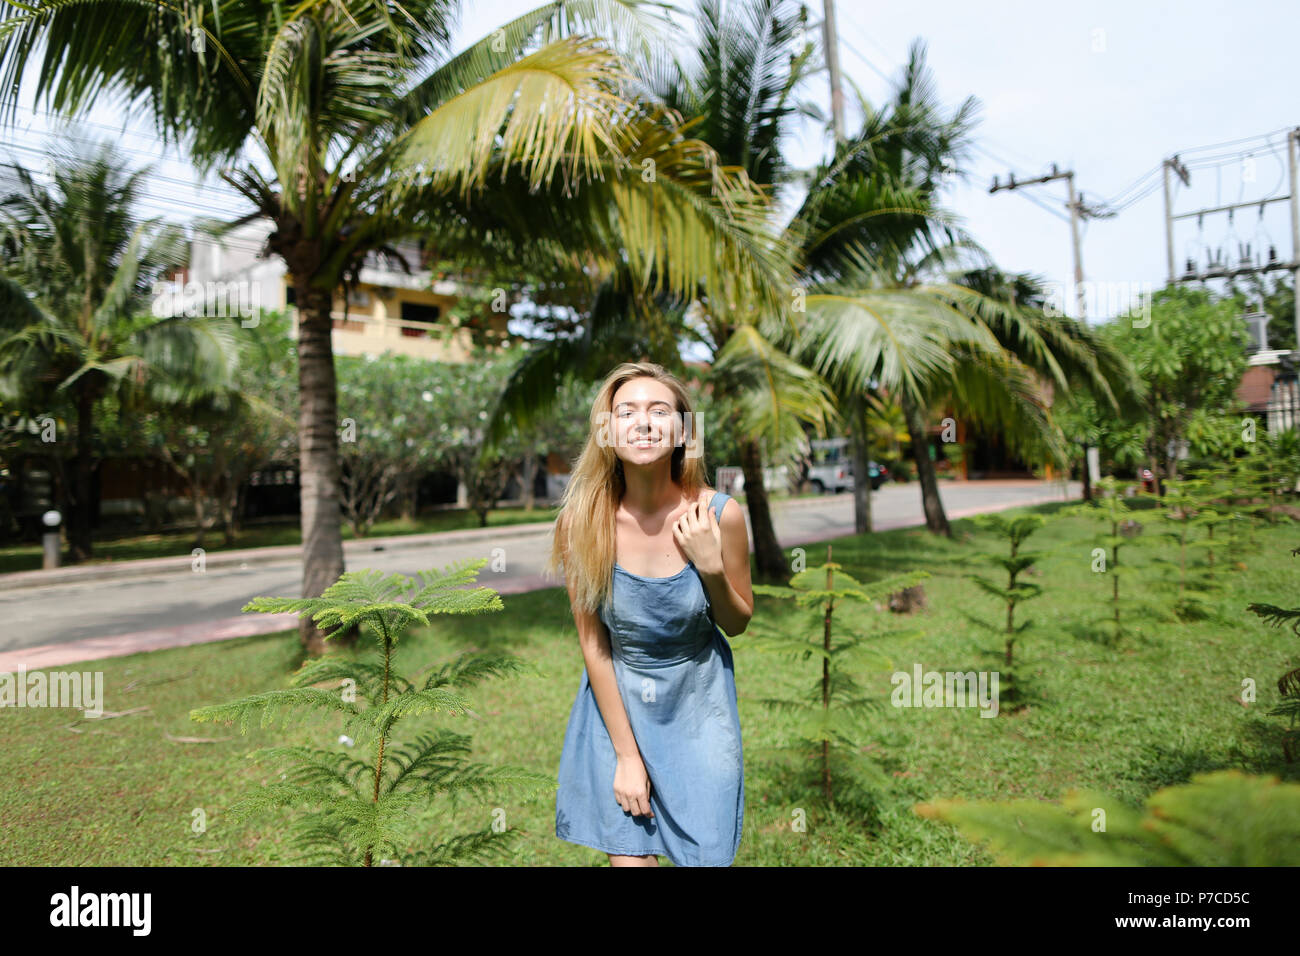 Young smiling woman wearing jeans sundress and standing near palms in background. - Stock Image